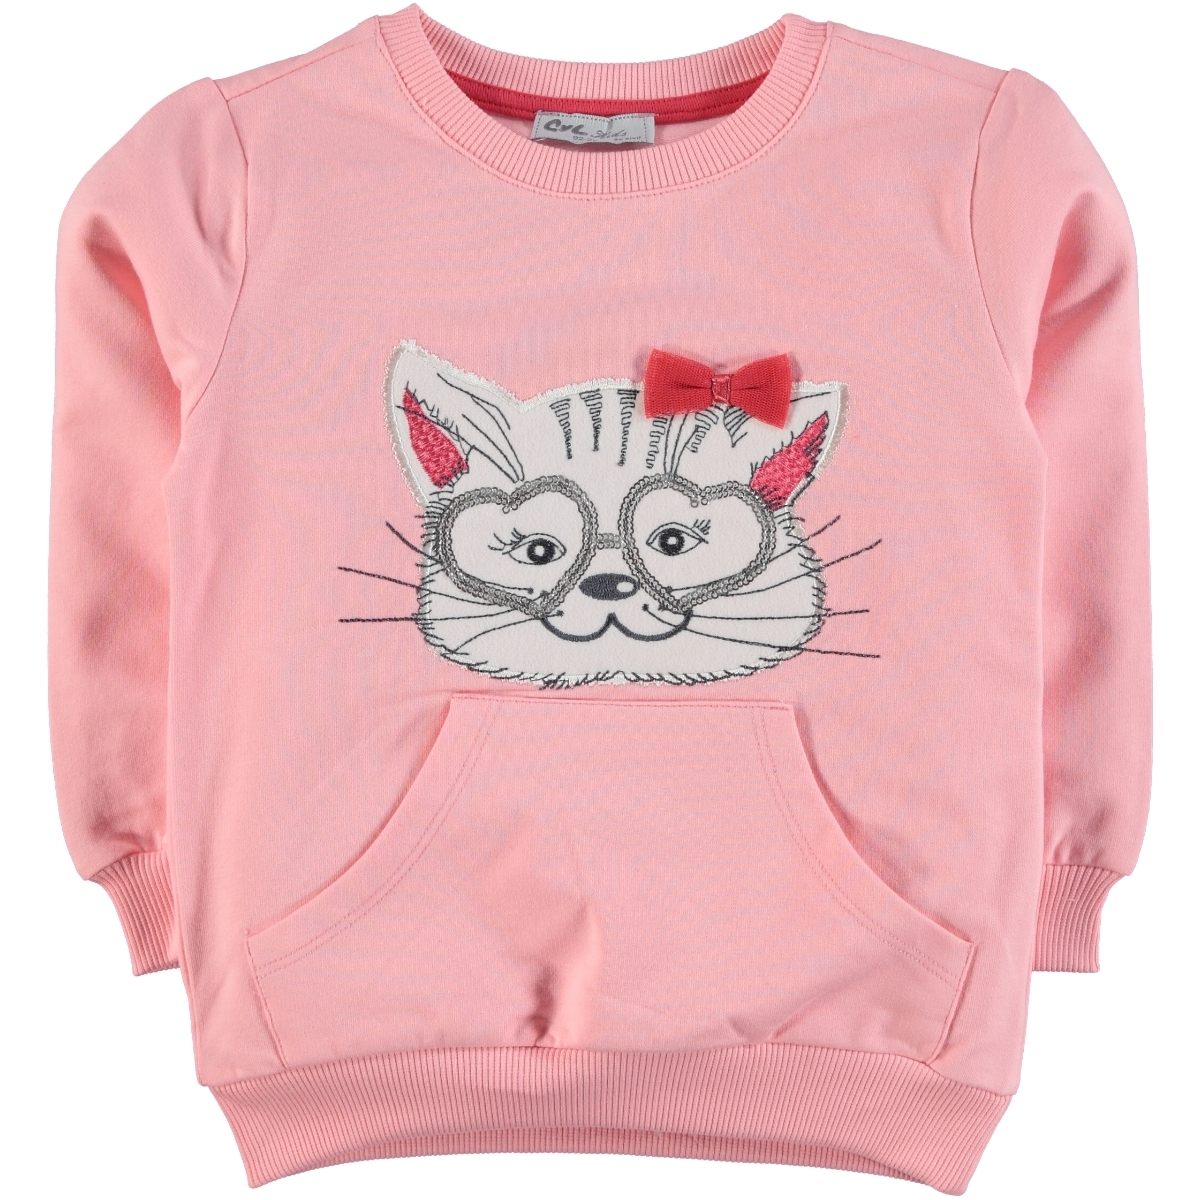 Cvl Baby Girl Powder Pink Sweatshirt Combed Cotton Age 2-5